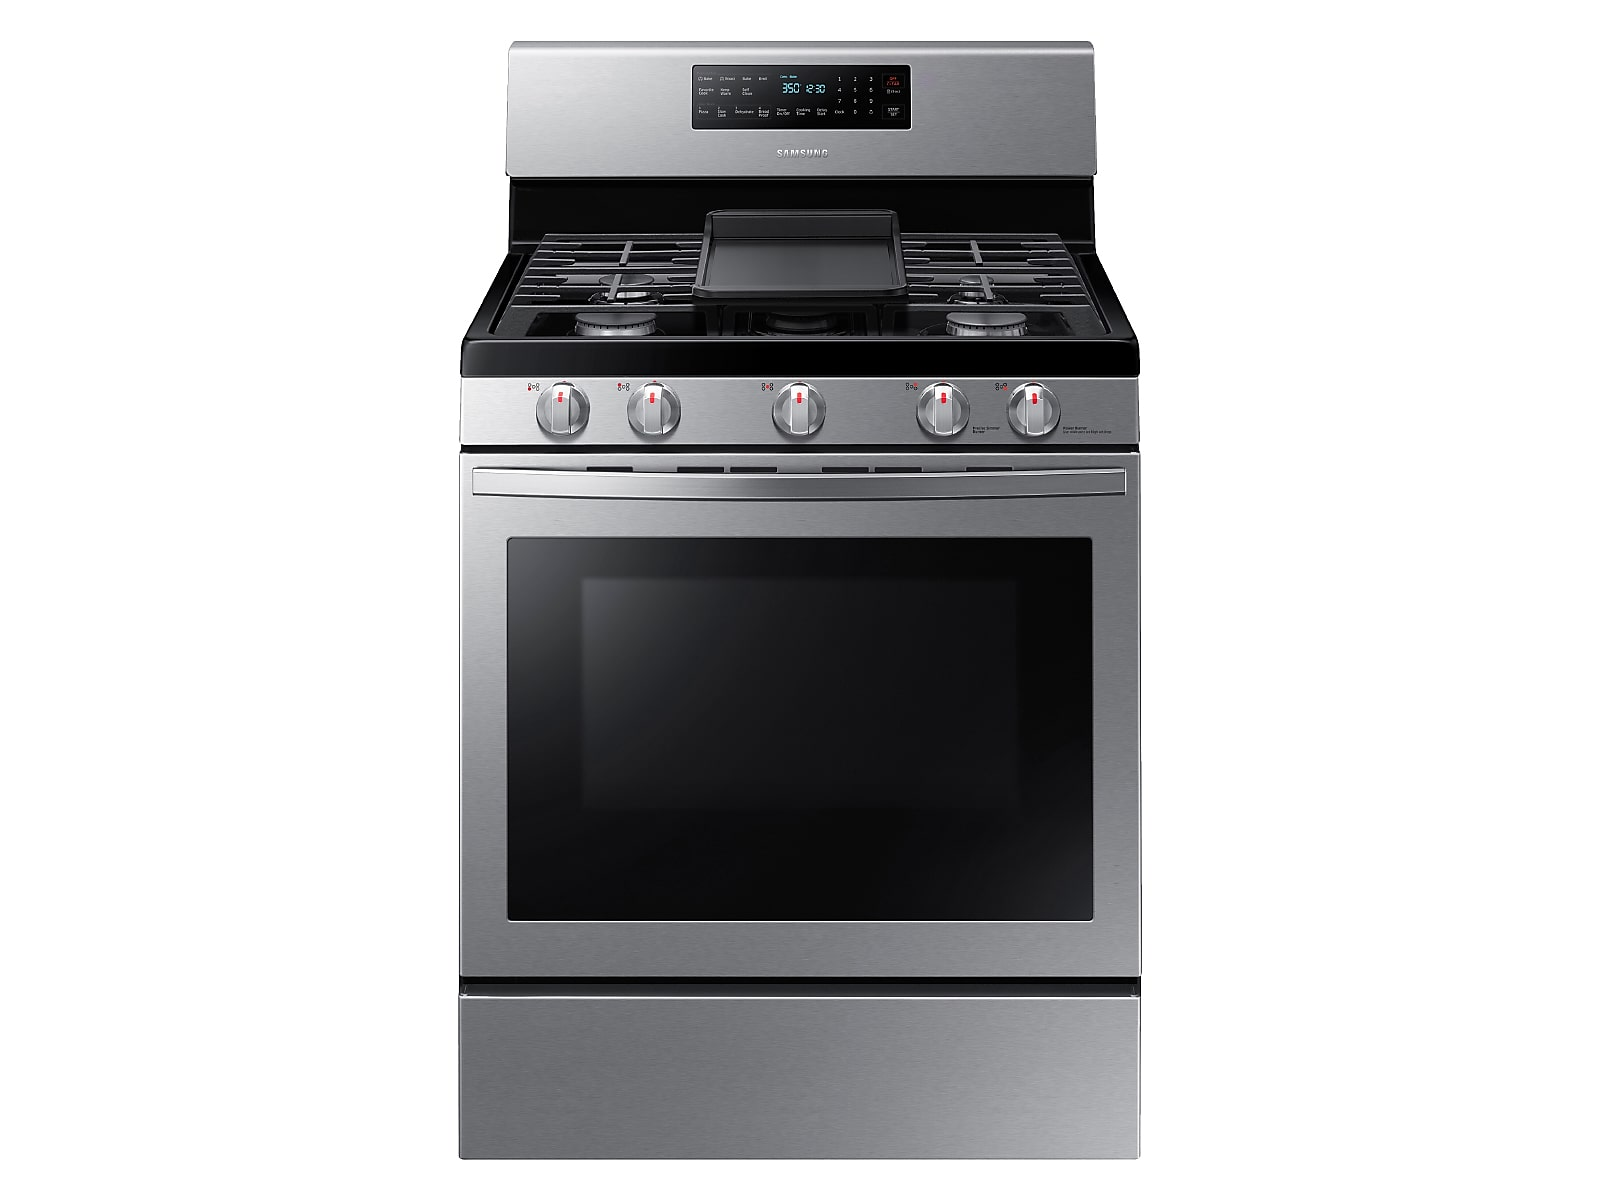 Samsung 5.8 cu. ft. Freestanding Gas Range with Convection in Stainless Steel(NX58R5601SS/AA)